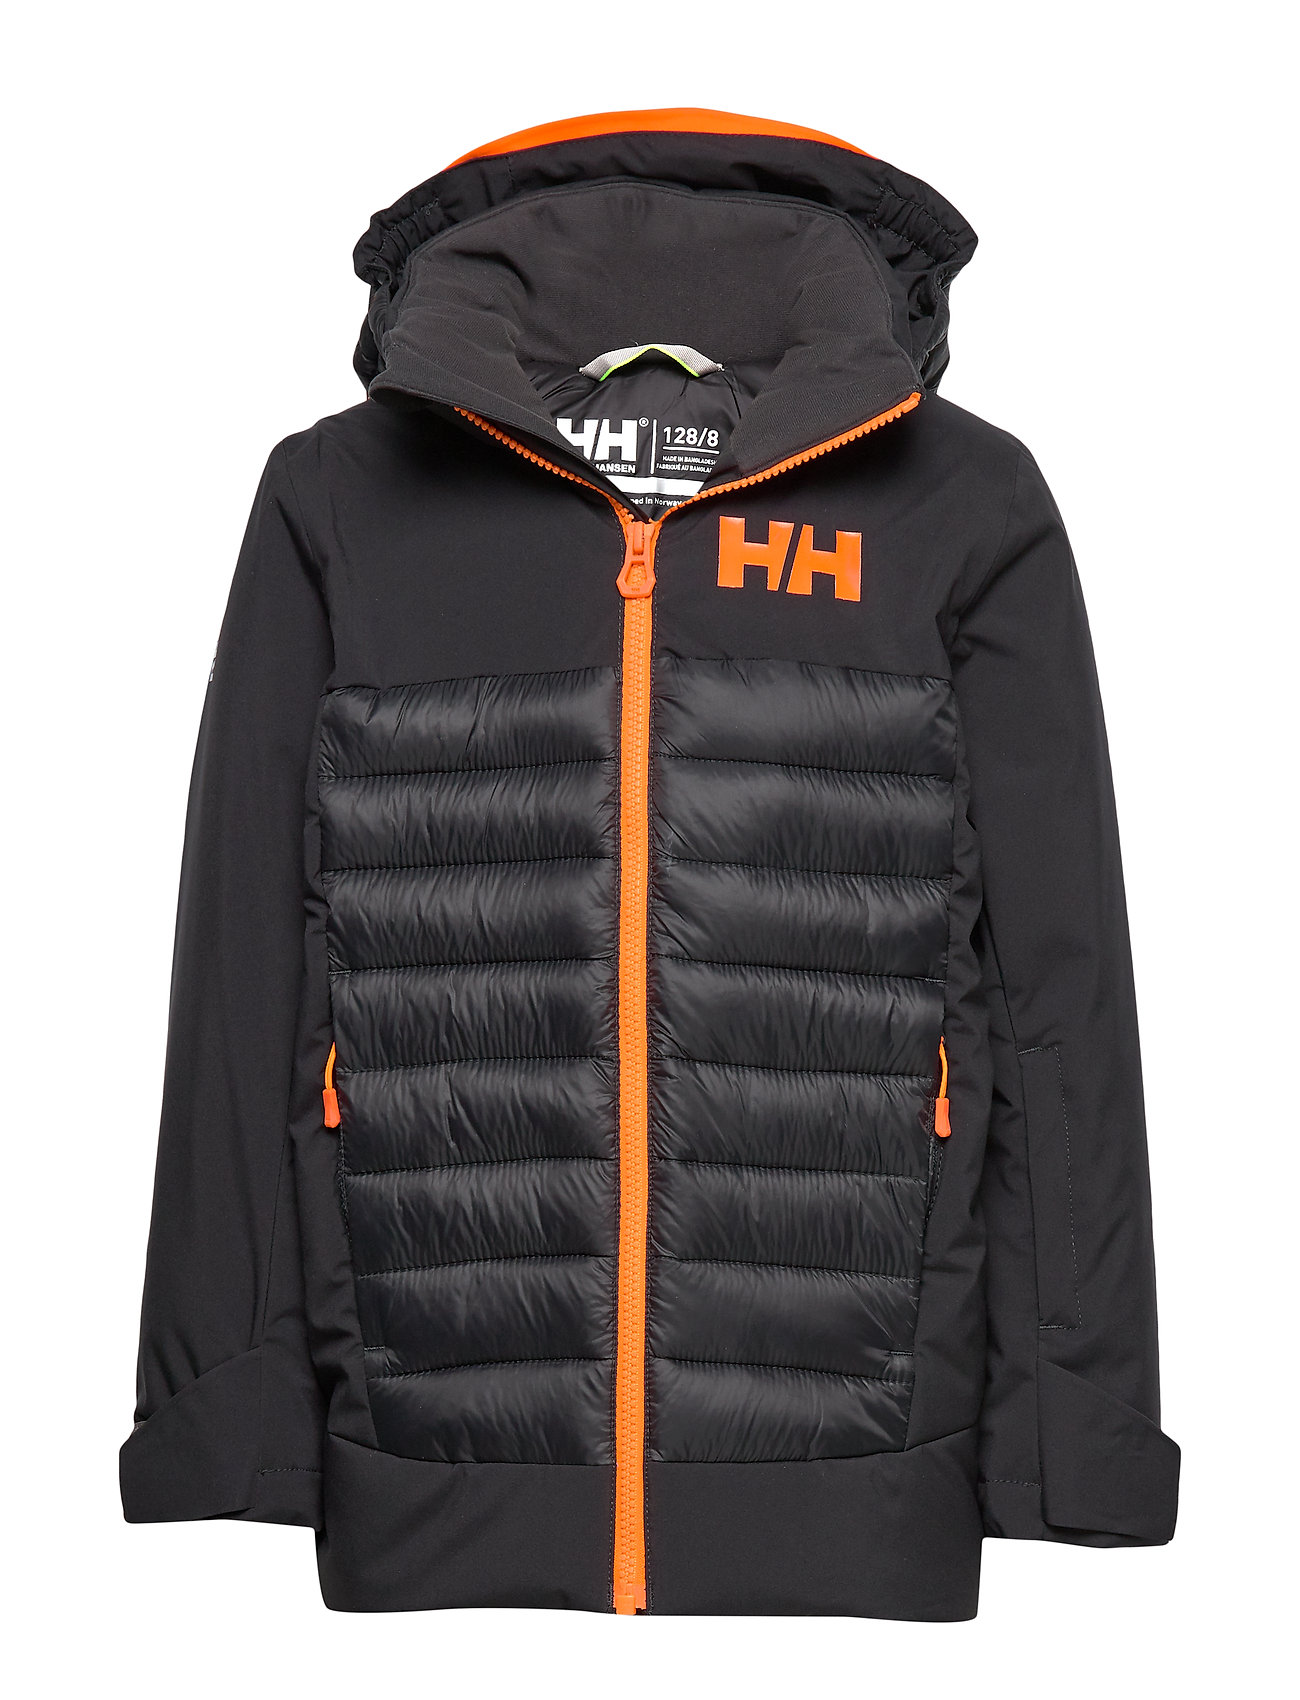 Helly Hansen JR SUMMIT JACKET - BLACK